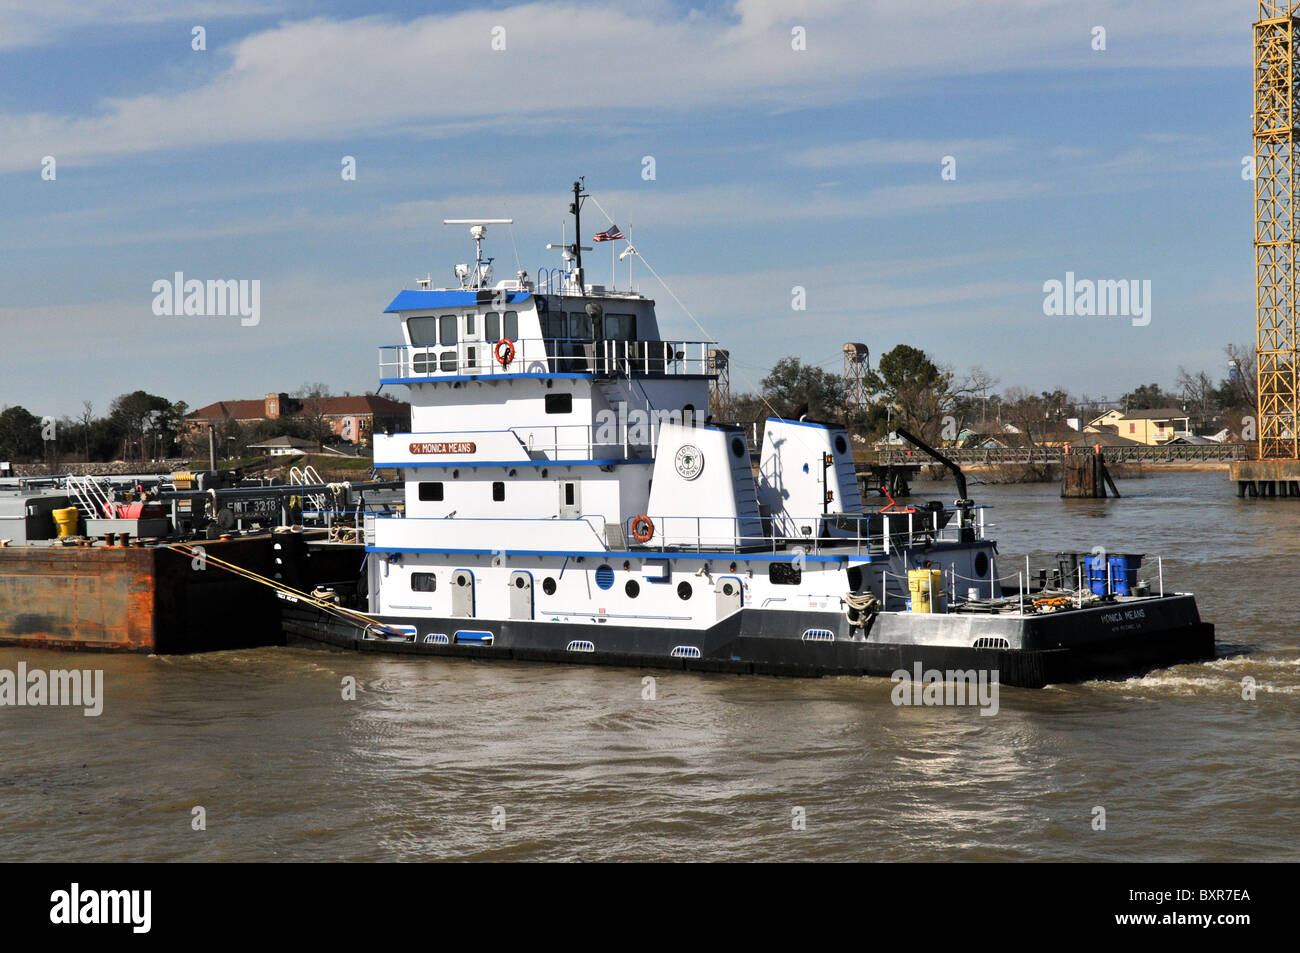 tugboat pushing barge mississippi river new orleans louisiana stock photo 33702210 alamy. Black Bedroom Furniture Sets. Home Design Ideas